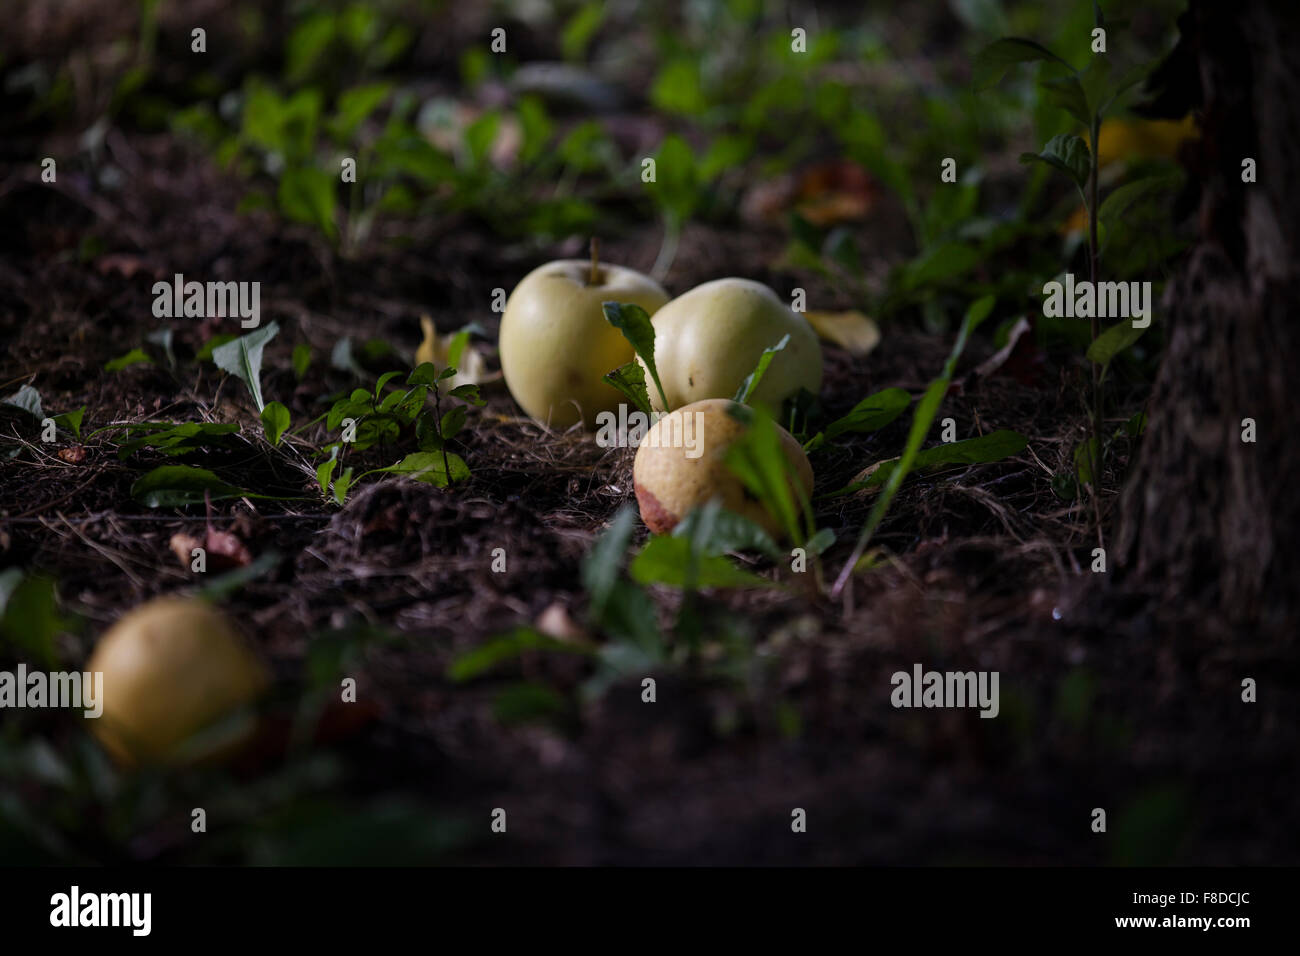 Apples on the ground of the orchard begin to rot. - Stock Image